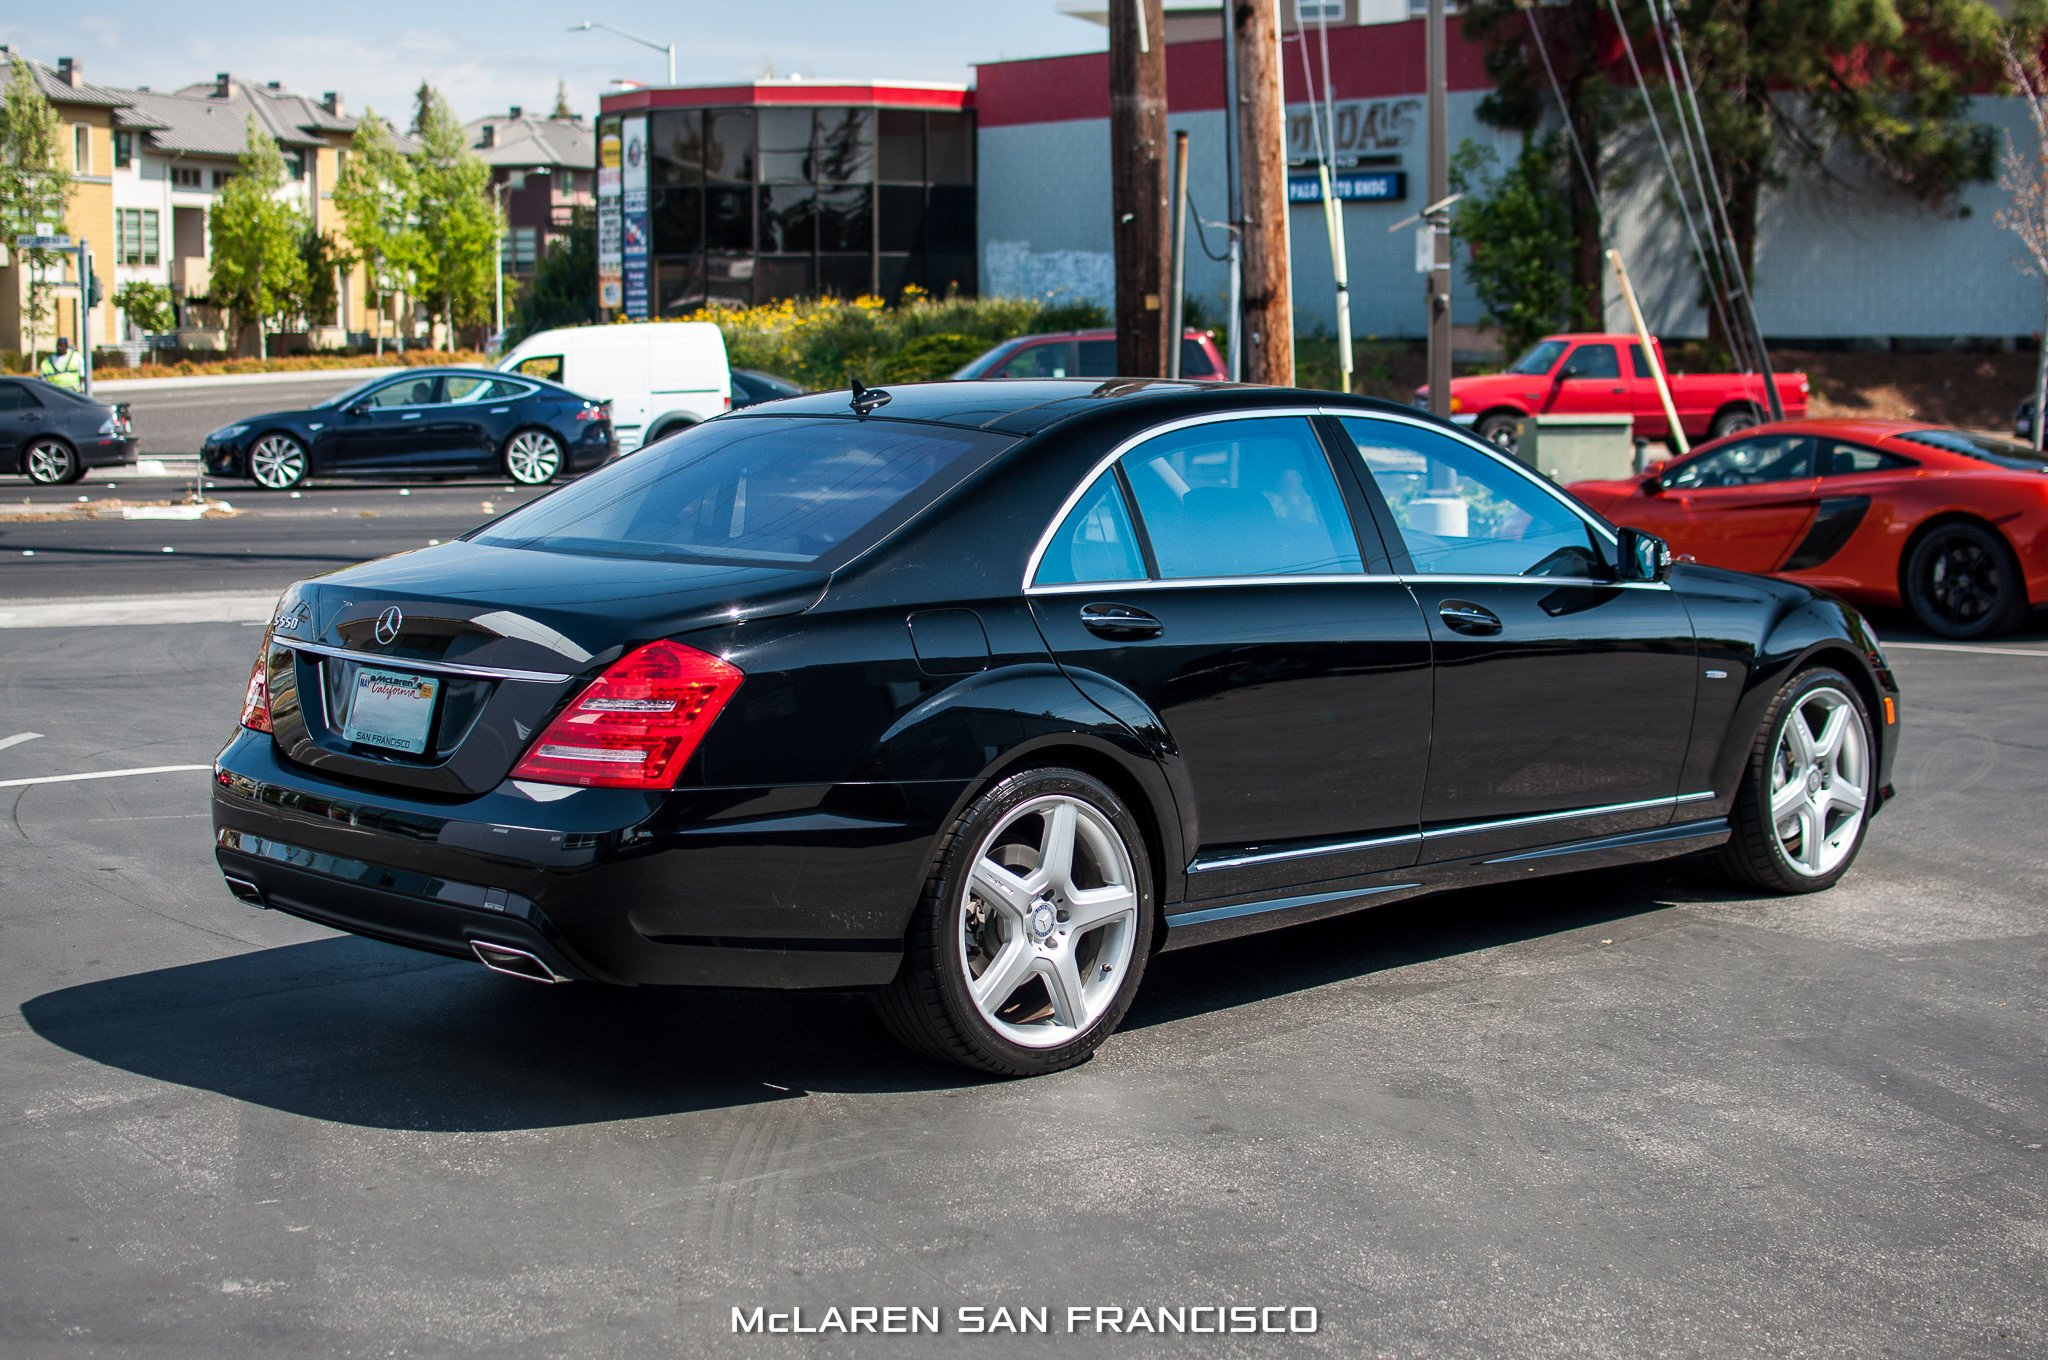 benz overview exterior s l class review hybrid connection door specs rwd view front the photos car and prices sedan ratings angular mercedes